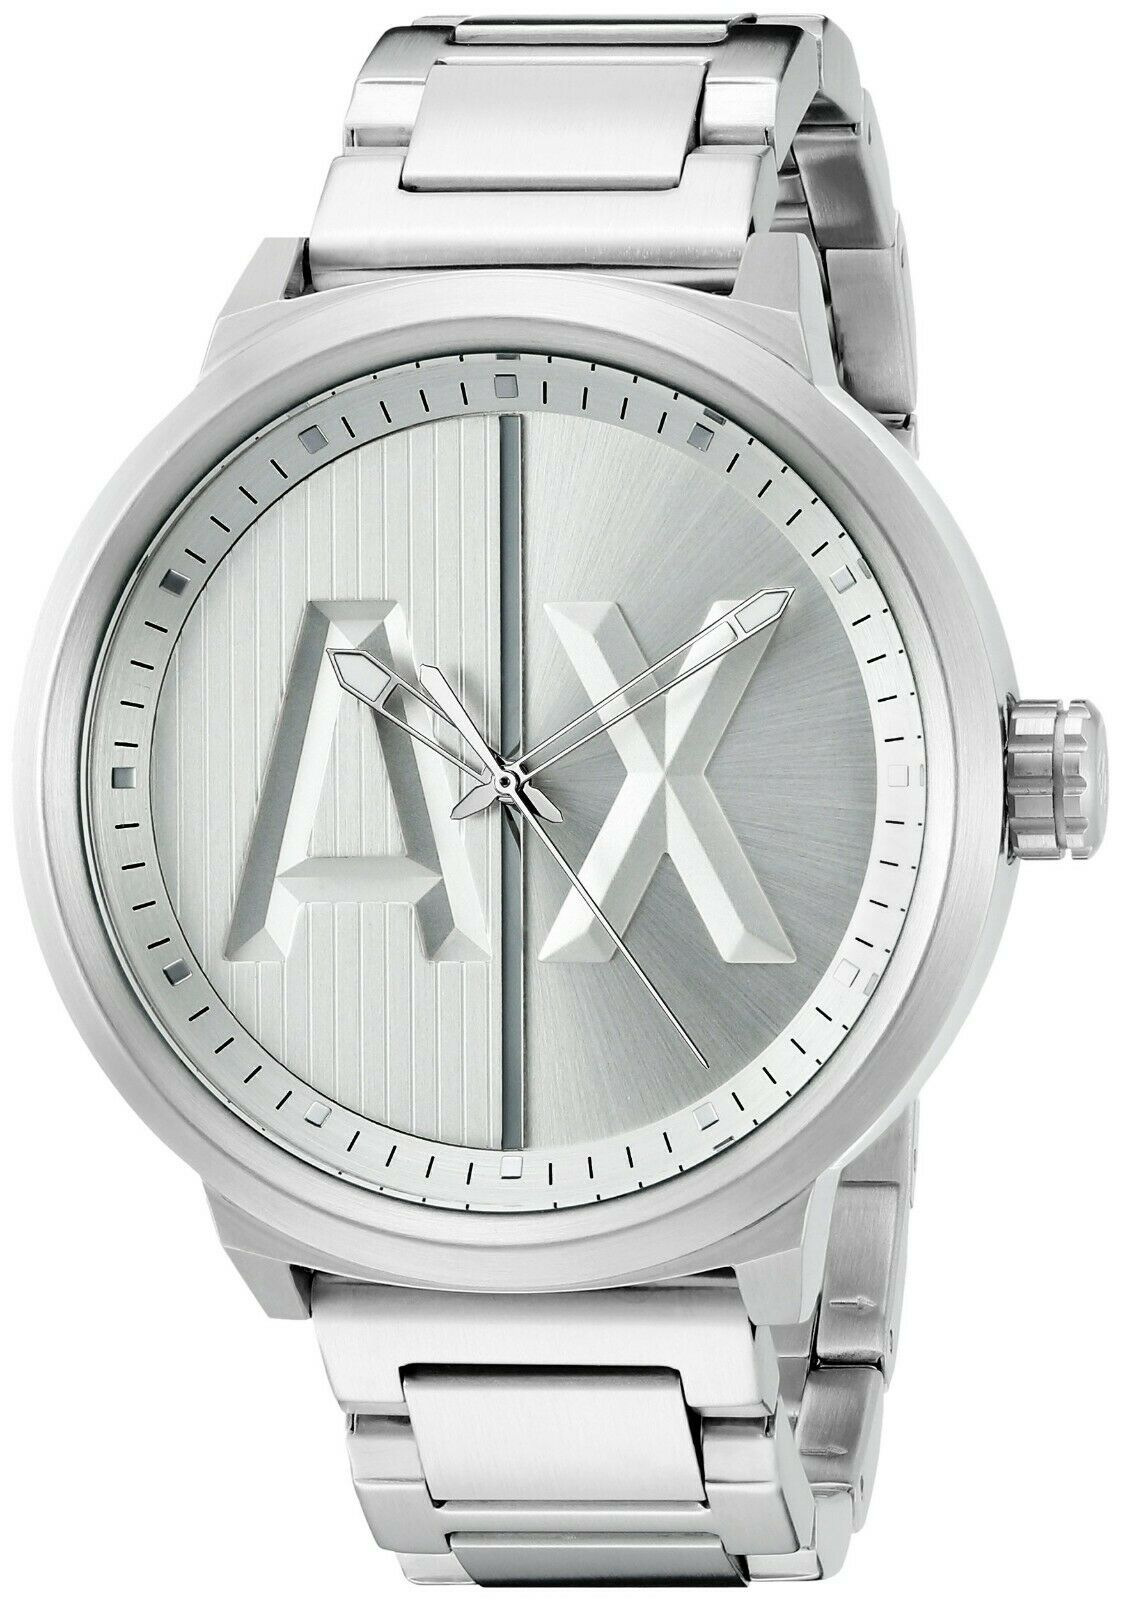 Armani Exchange Men's Stainless Steel Bracelet Watch 49mm AX1364 $190